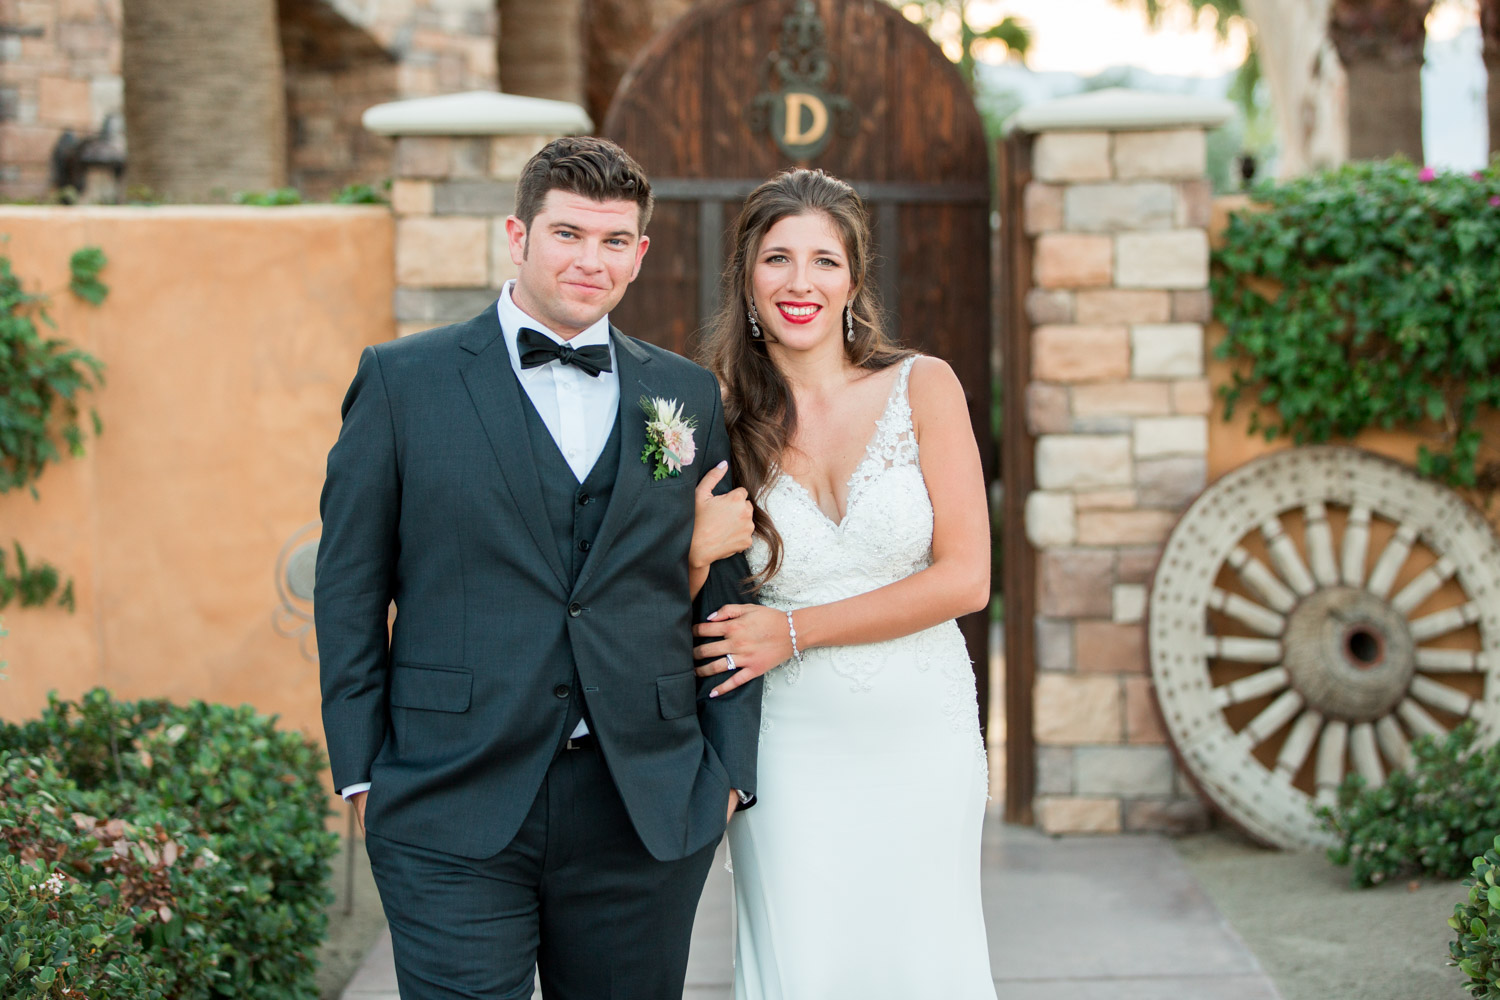 Bride and groom portrait at Desert Ridge Estate in Palm Springs, Cavin Elizabeth Photography